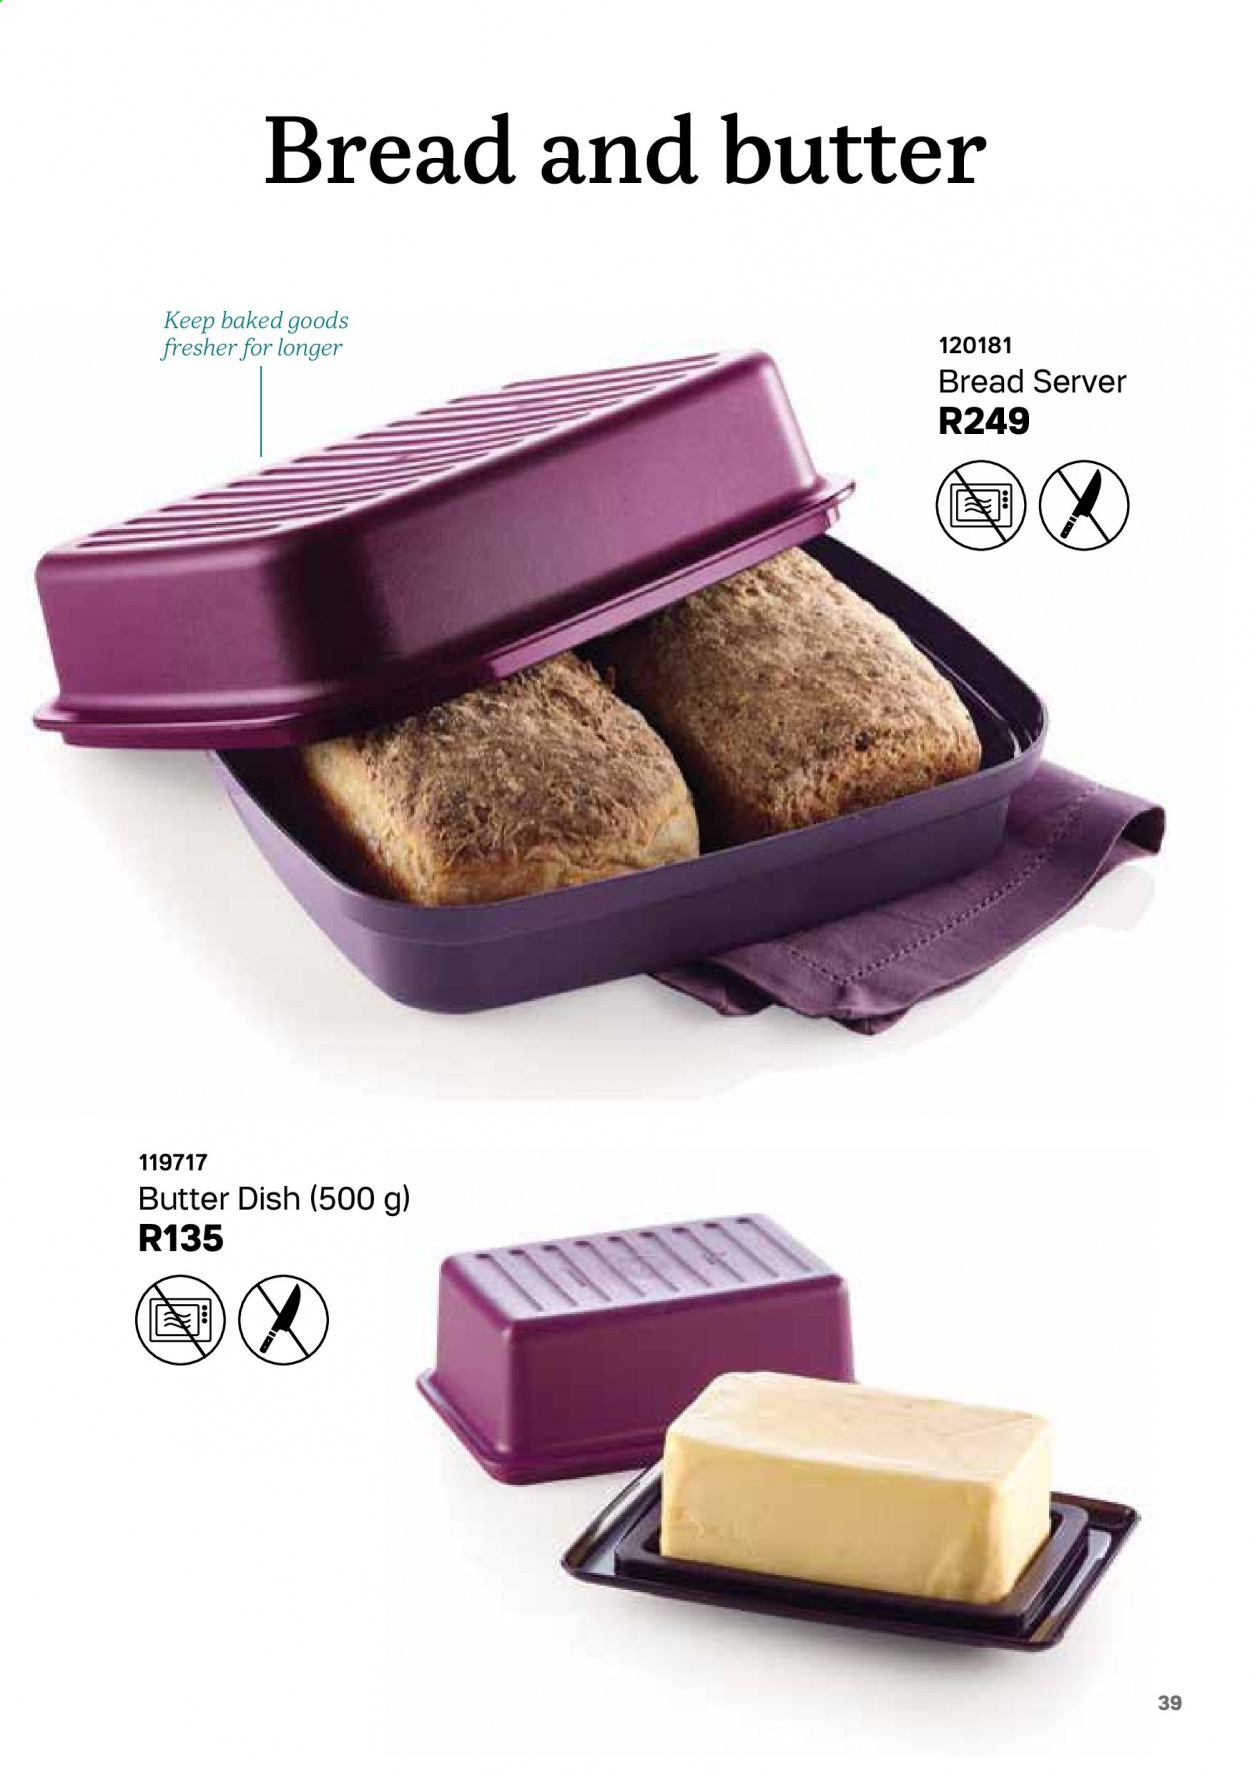 Tupperware catalogue . Page 39.